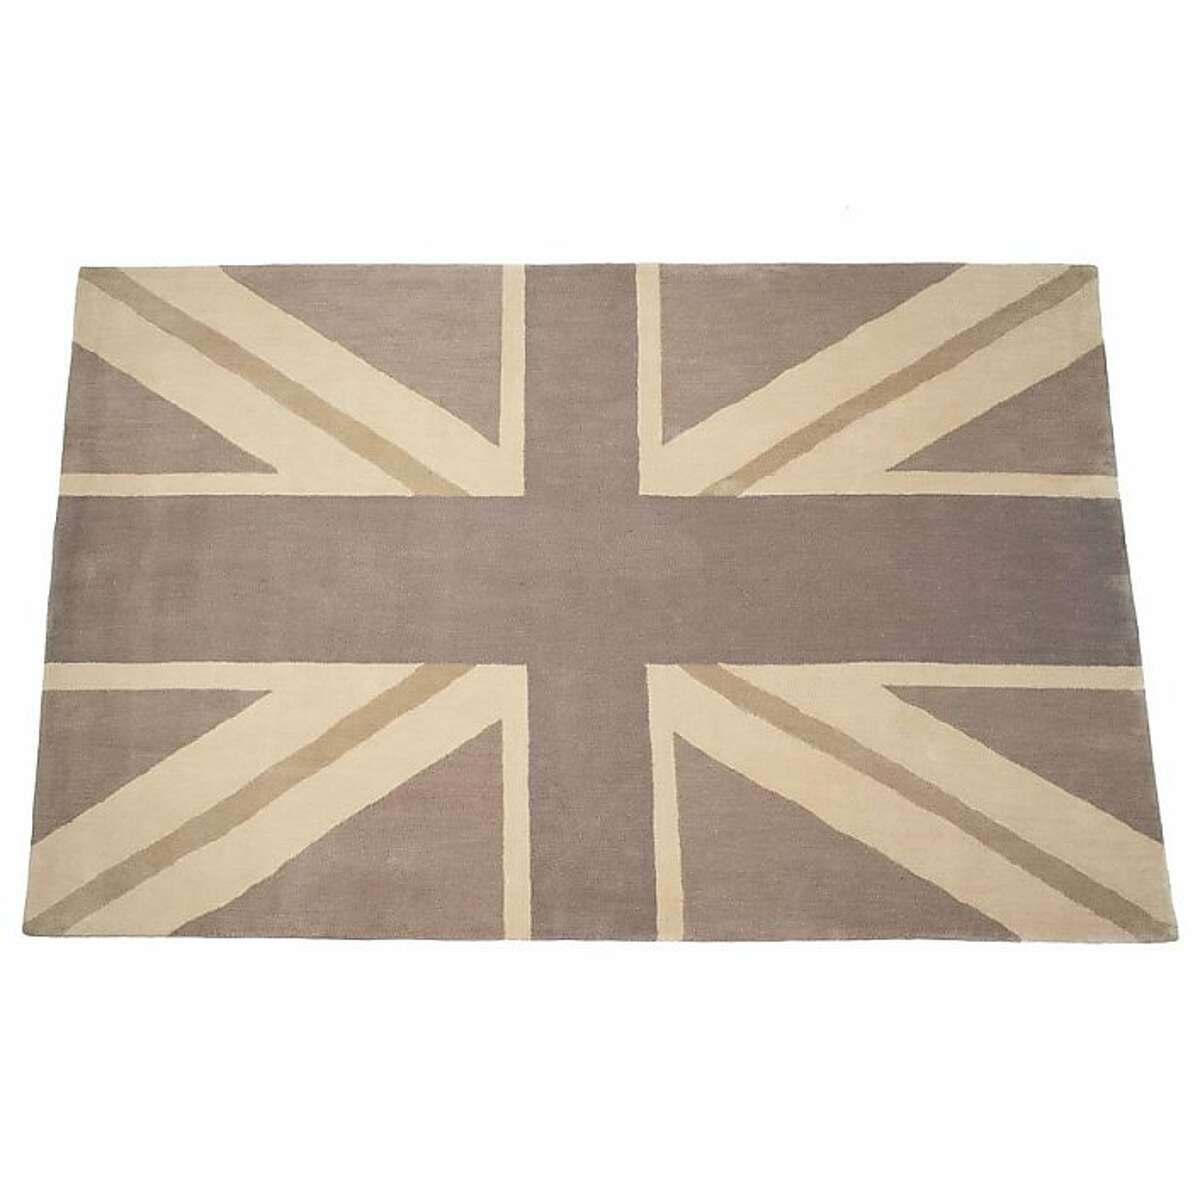 Union Jack rug from Z Gallerie Ran on: 10-02-2011 Photo caption Dummy text goes here. Dummy text goes here. Dummy text goes here. Dummy text goes here. Dummy text goes here. Dummy text goes here. Dummy text goes here. Dummy text goes here.###Photo: moreorless25_less0###Live Caption:Union Jack rug from Z Gallerie###Caption History:Union Jack rug from Z Gallerie###Notes:###Special Instructions: